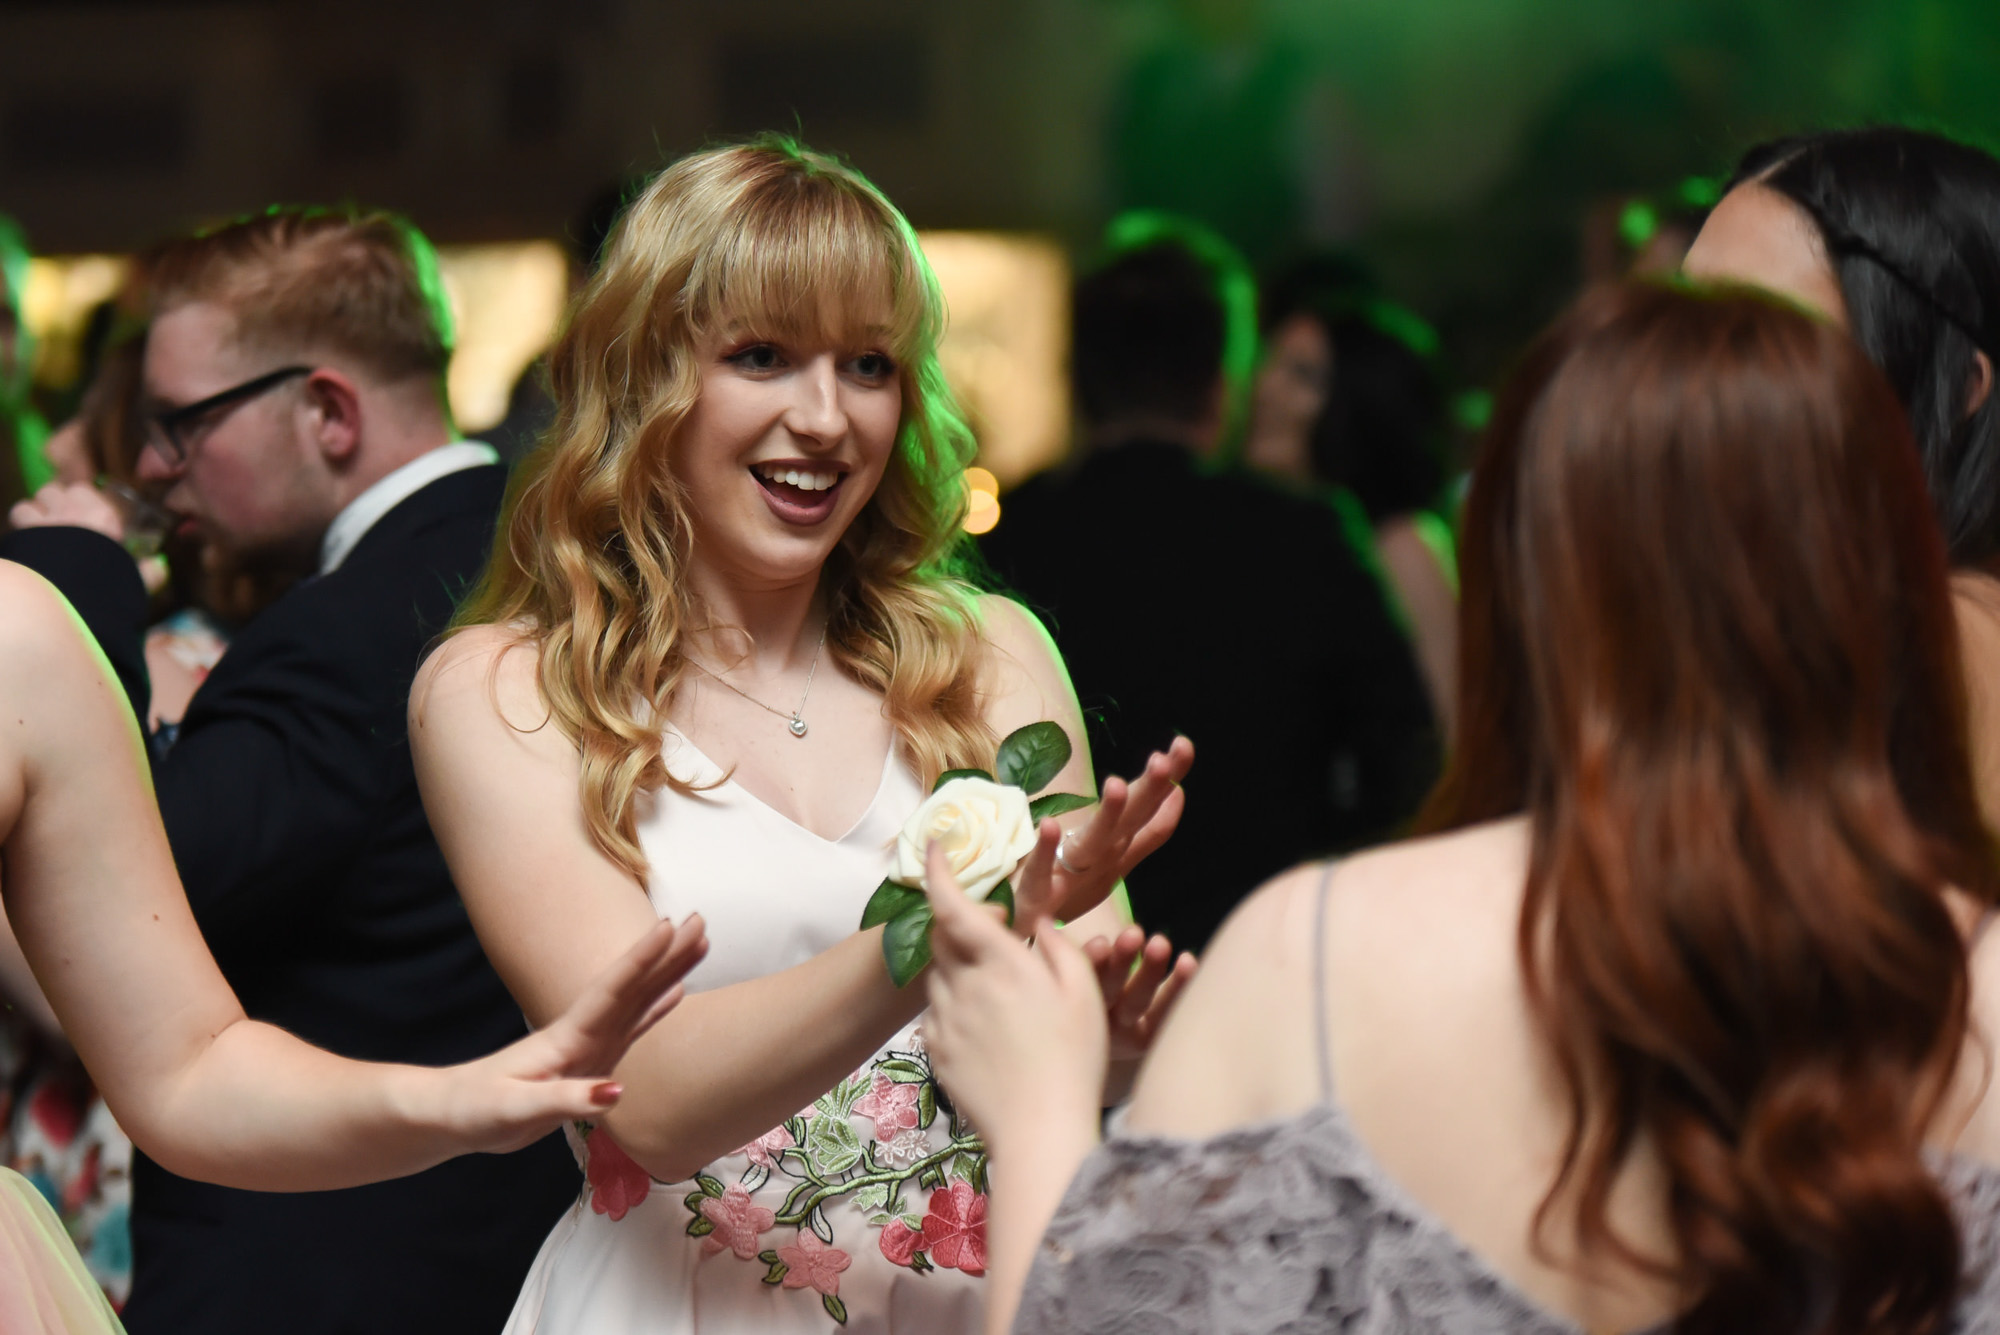 UCLAN_MT_BALL_2019_454.jpg